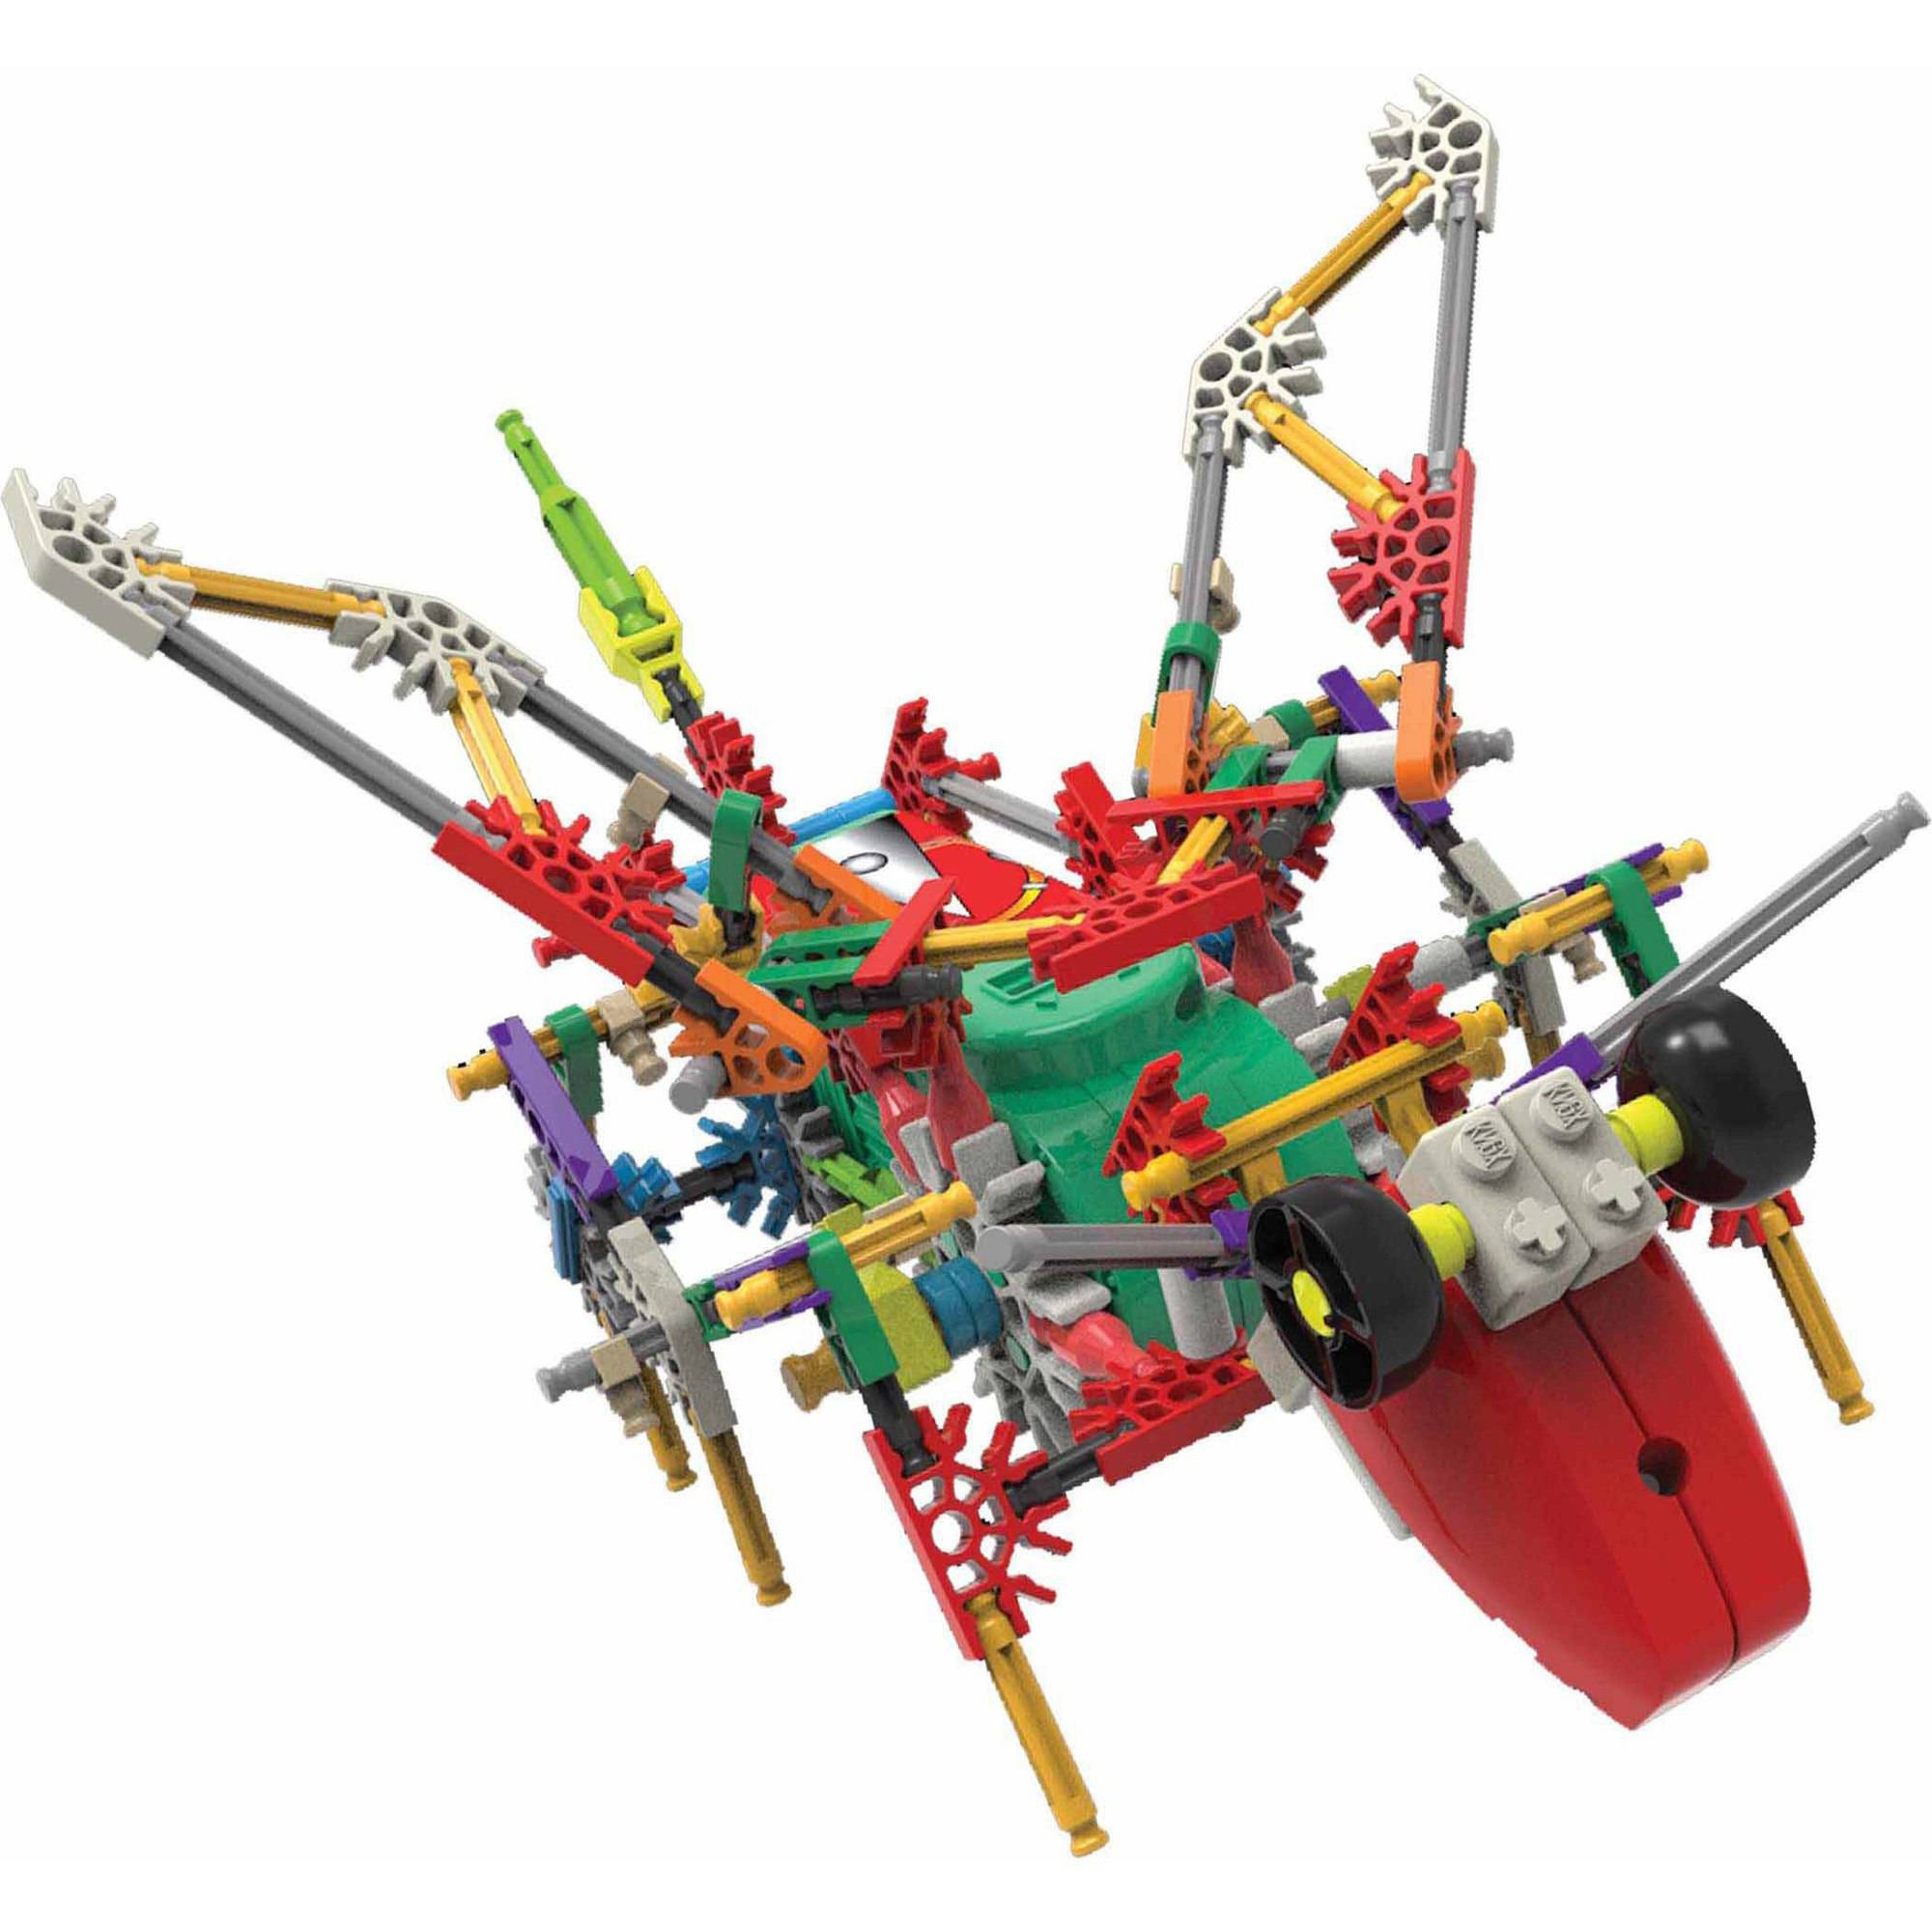 K'NEX Robo-Sting Building Set